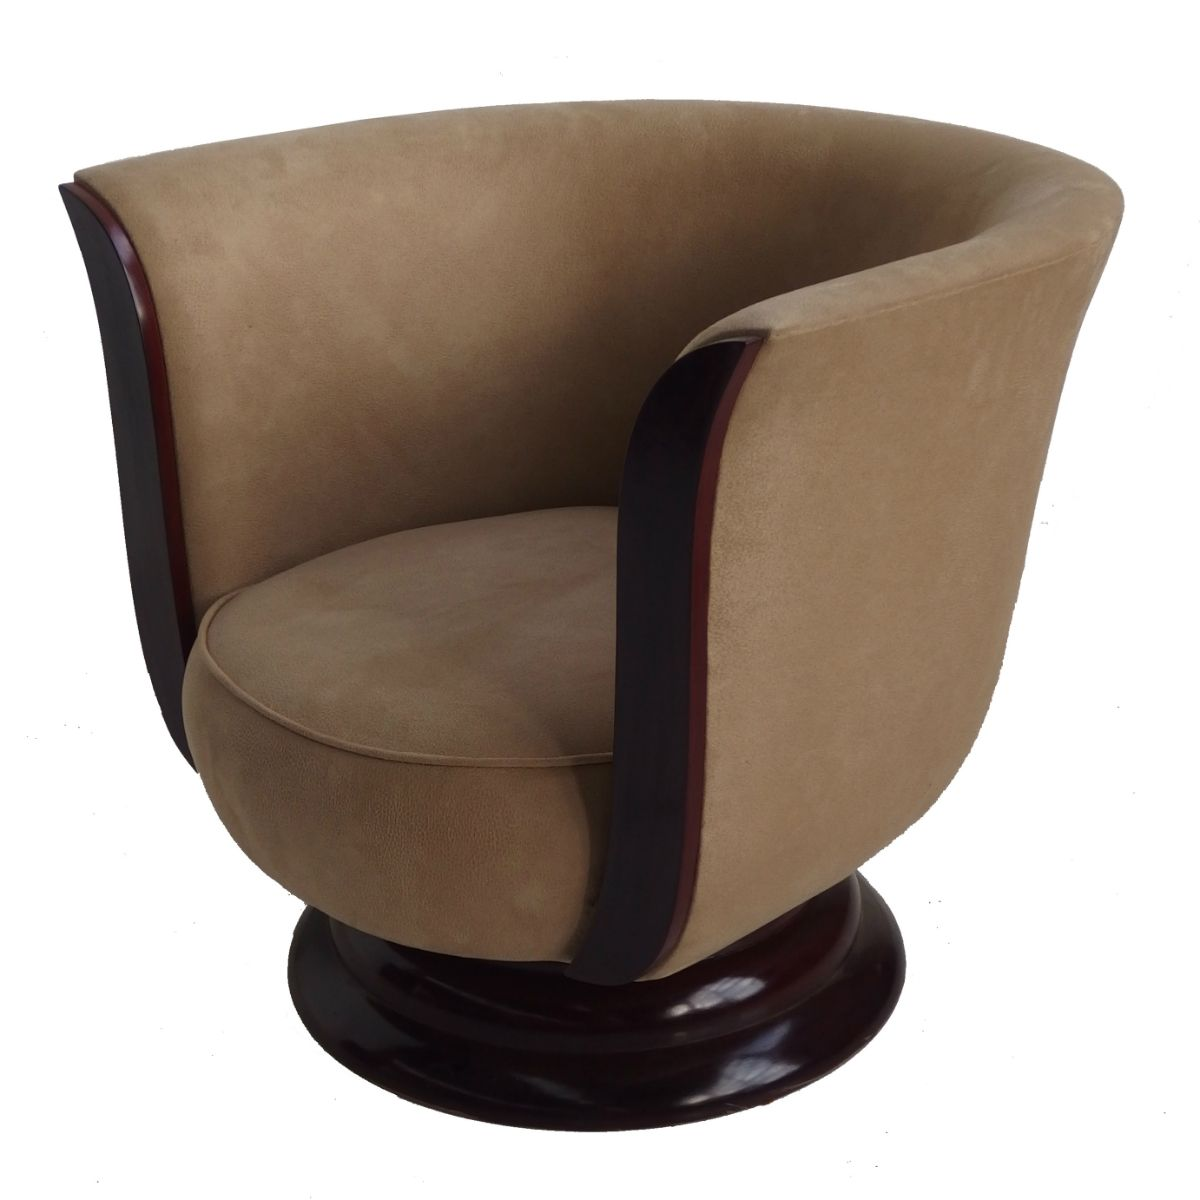 art moderne furniture. Pair Of Art Deco Style Lounge Chairs - 2 SEATING Furniture Monique . Moderne